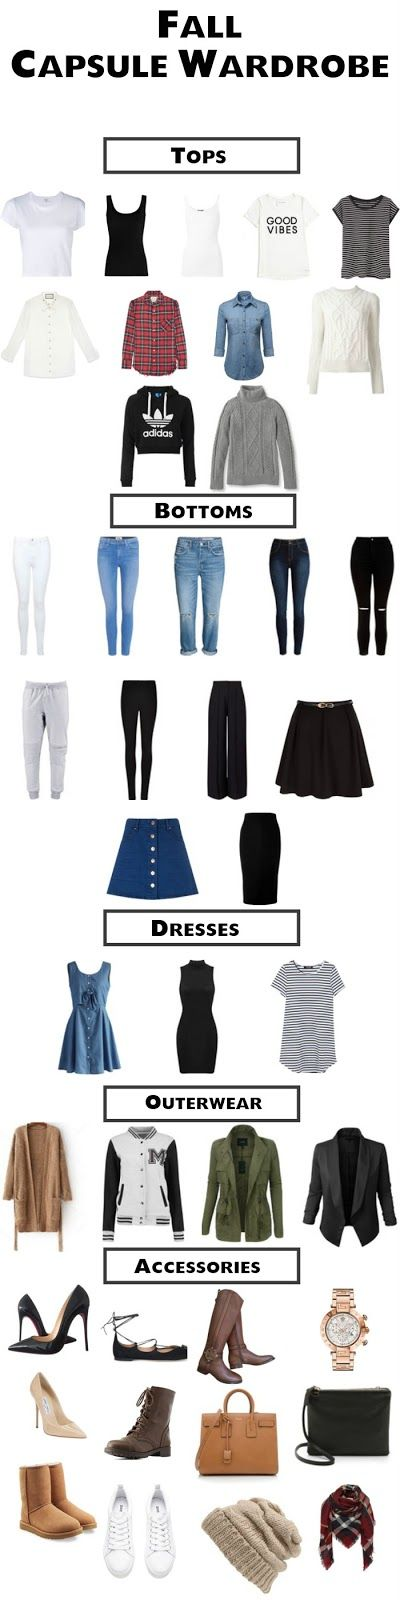 College Capsule Wardrobe For Fall. College will be so much easier with a…